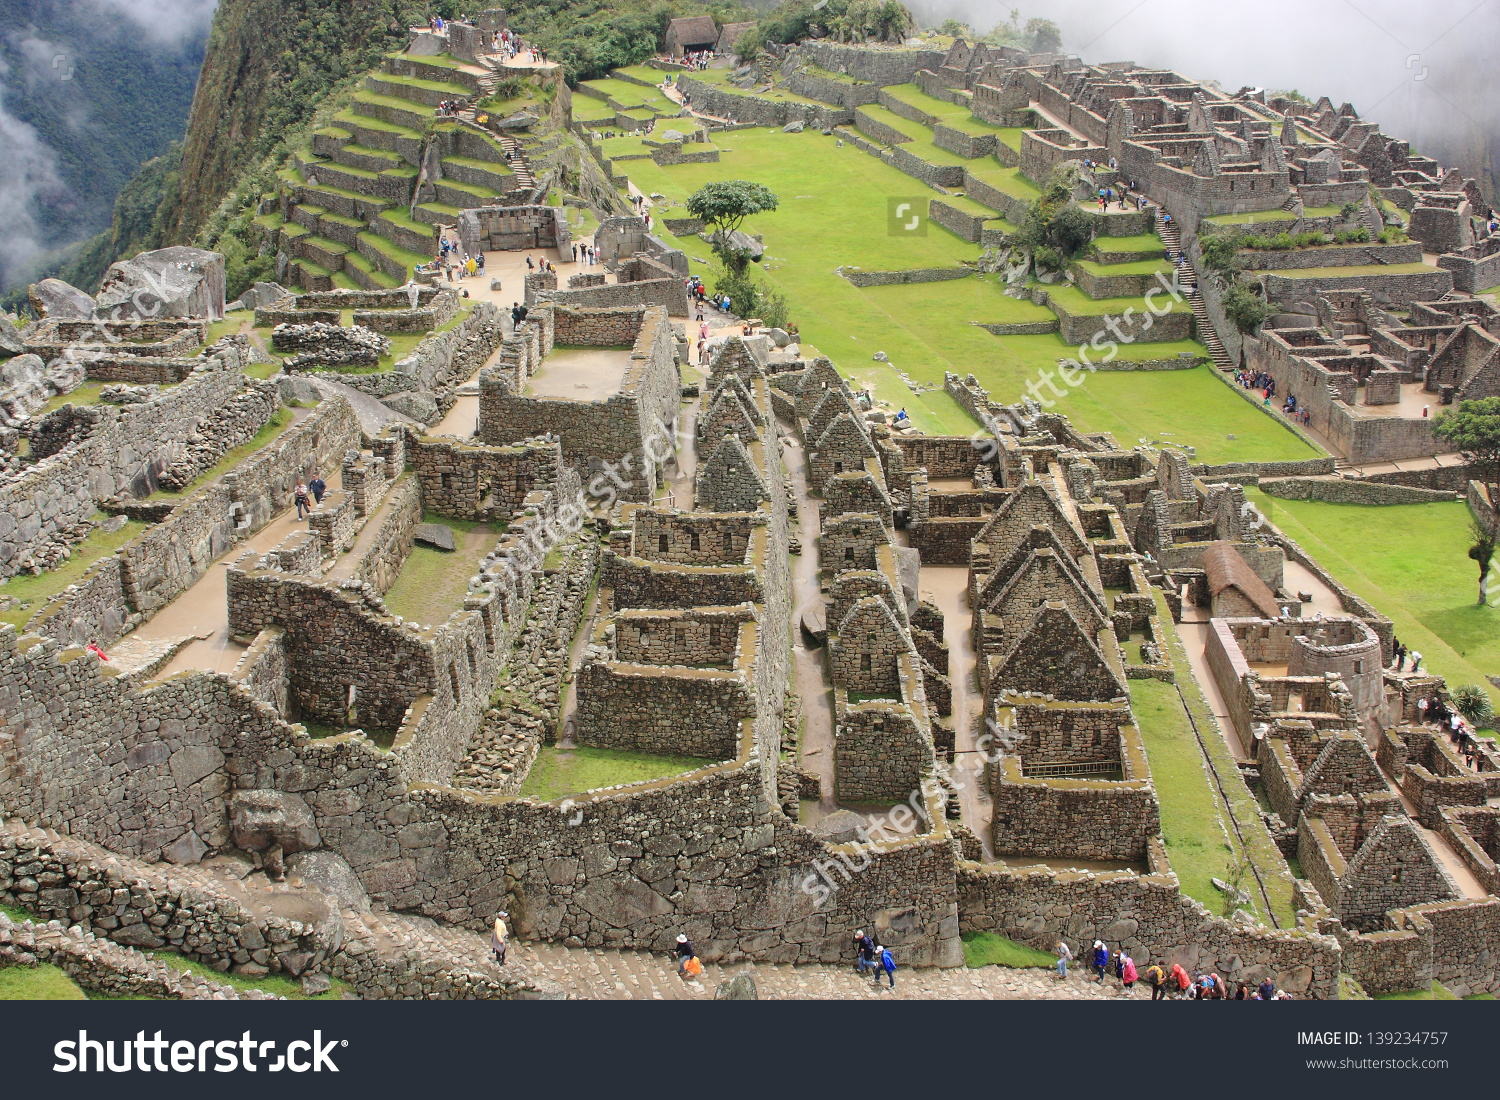 Archeology Ancient Aztec Civilization Inca Peru Stock Photo.